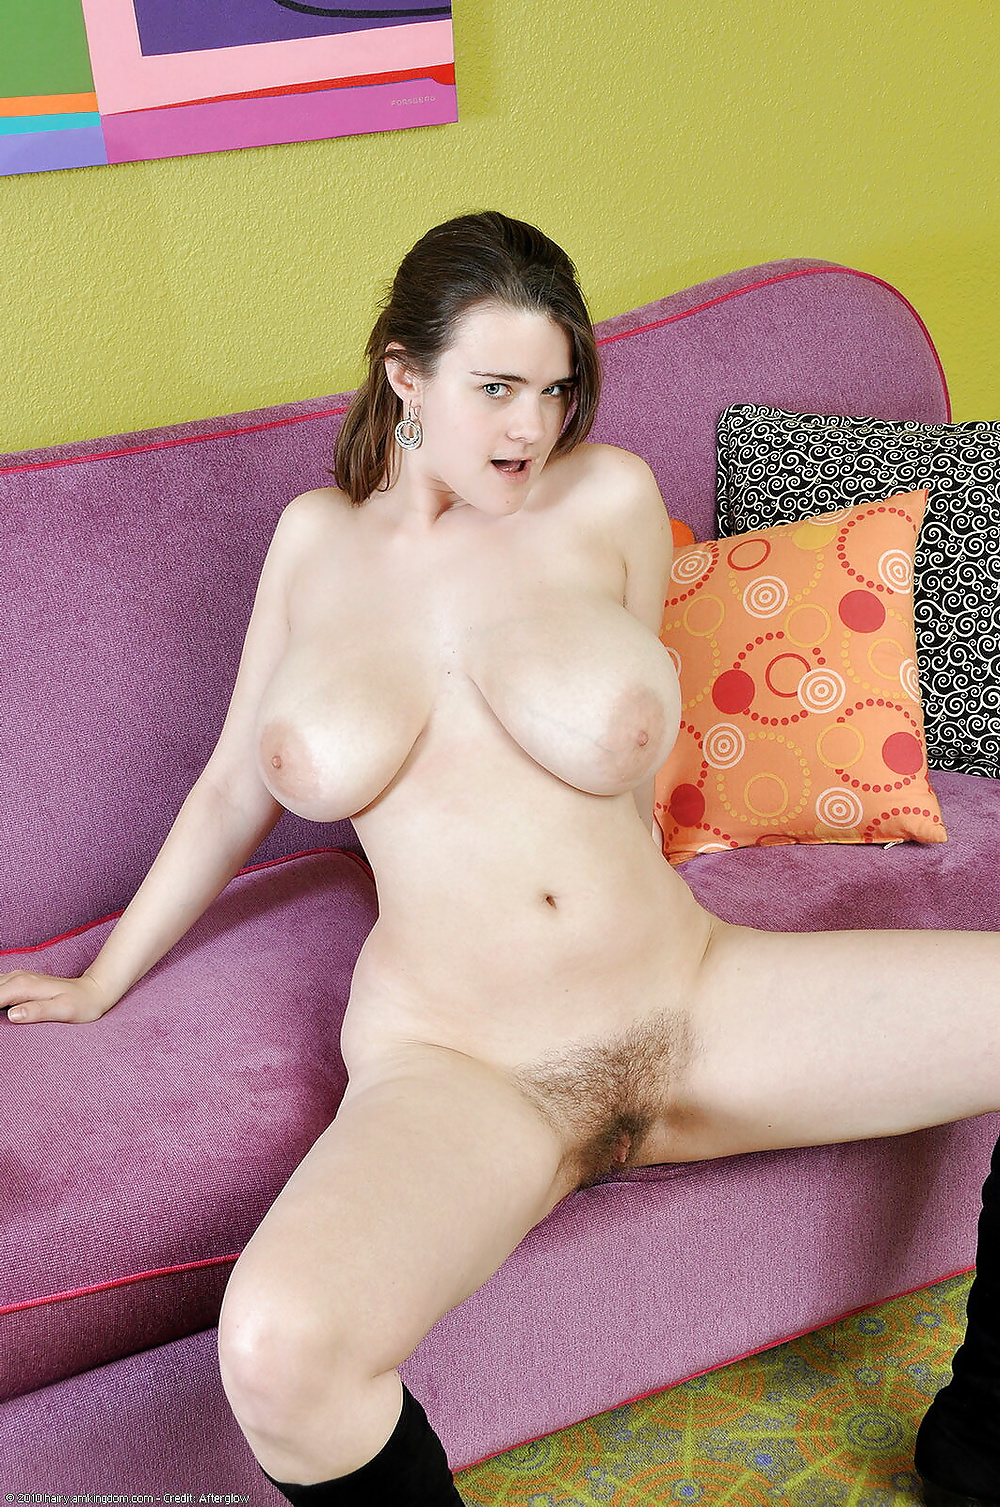 Search Hairy Busty